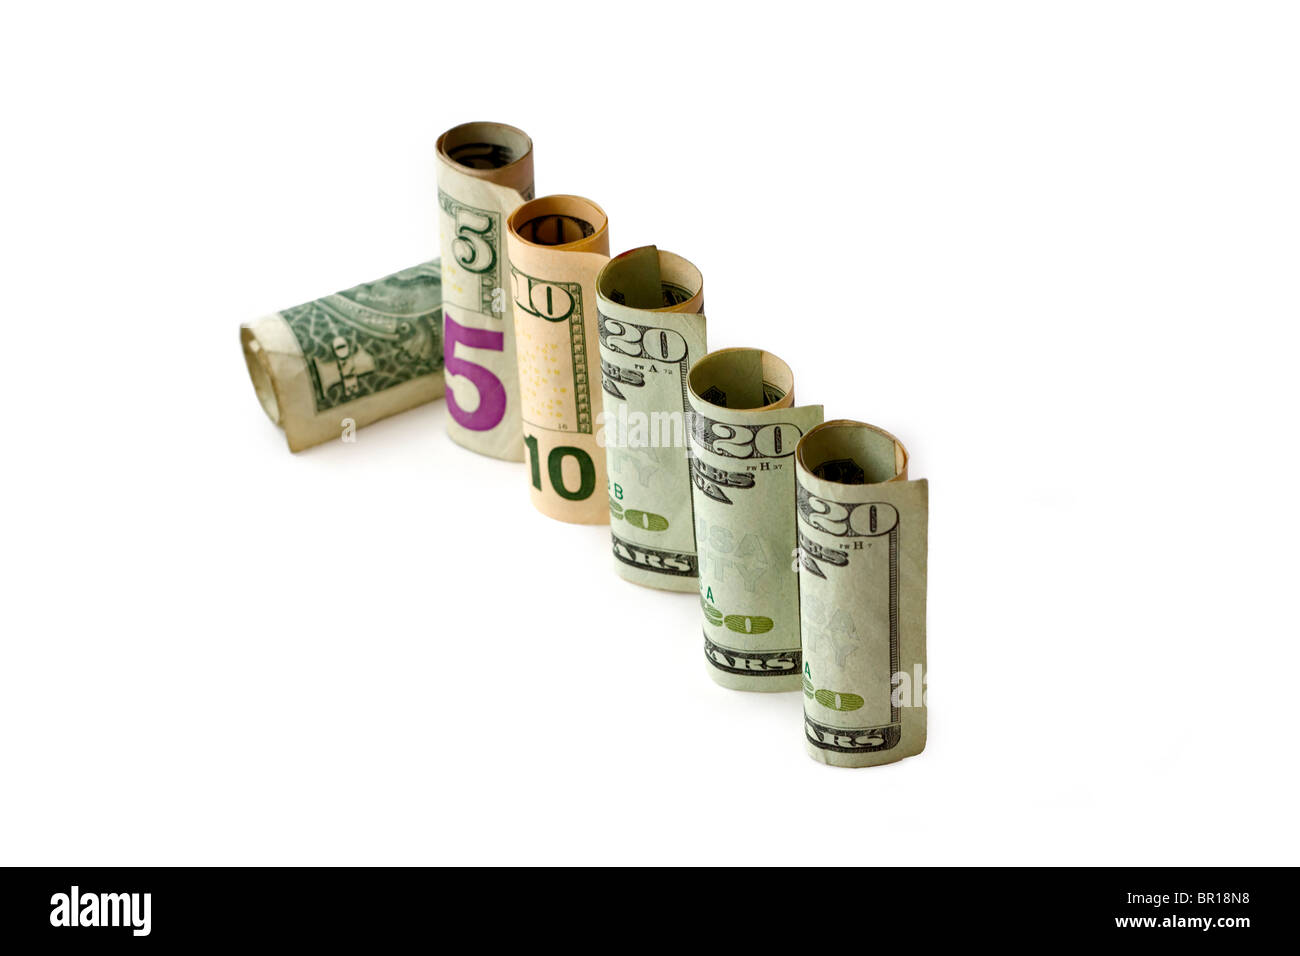 Recession concept illustrated with a row of banknotes and the last one fallen over - Stock Image